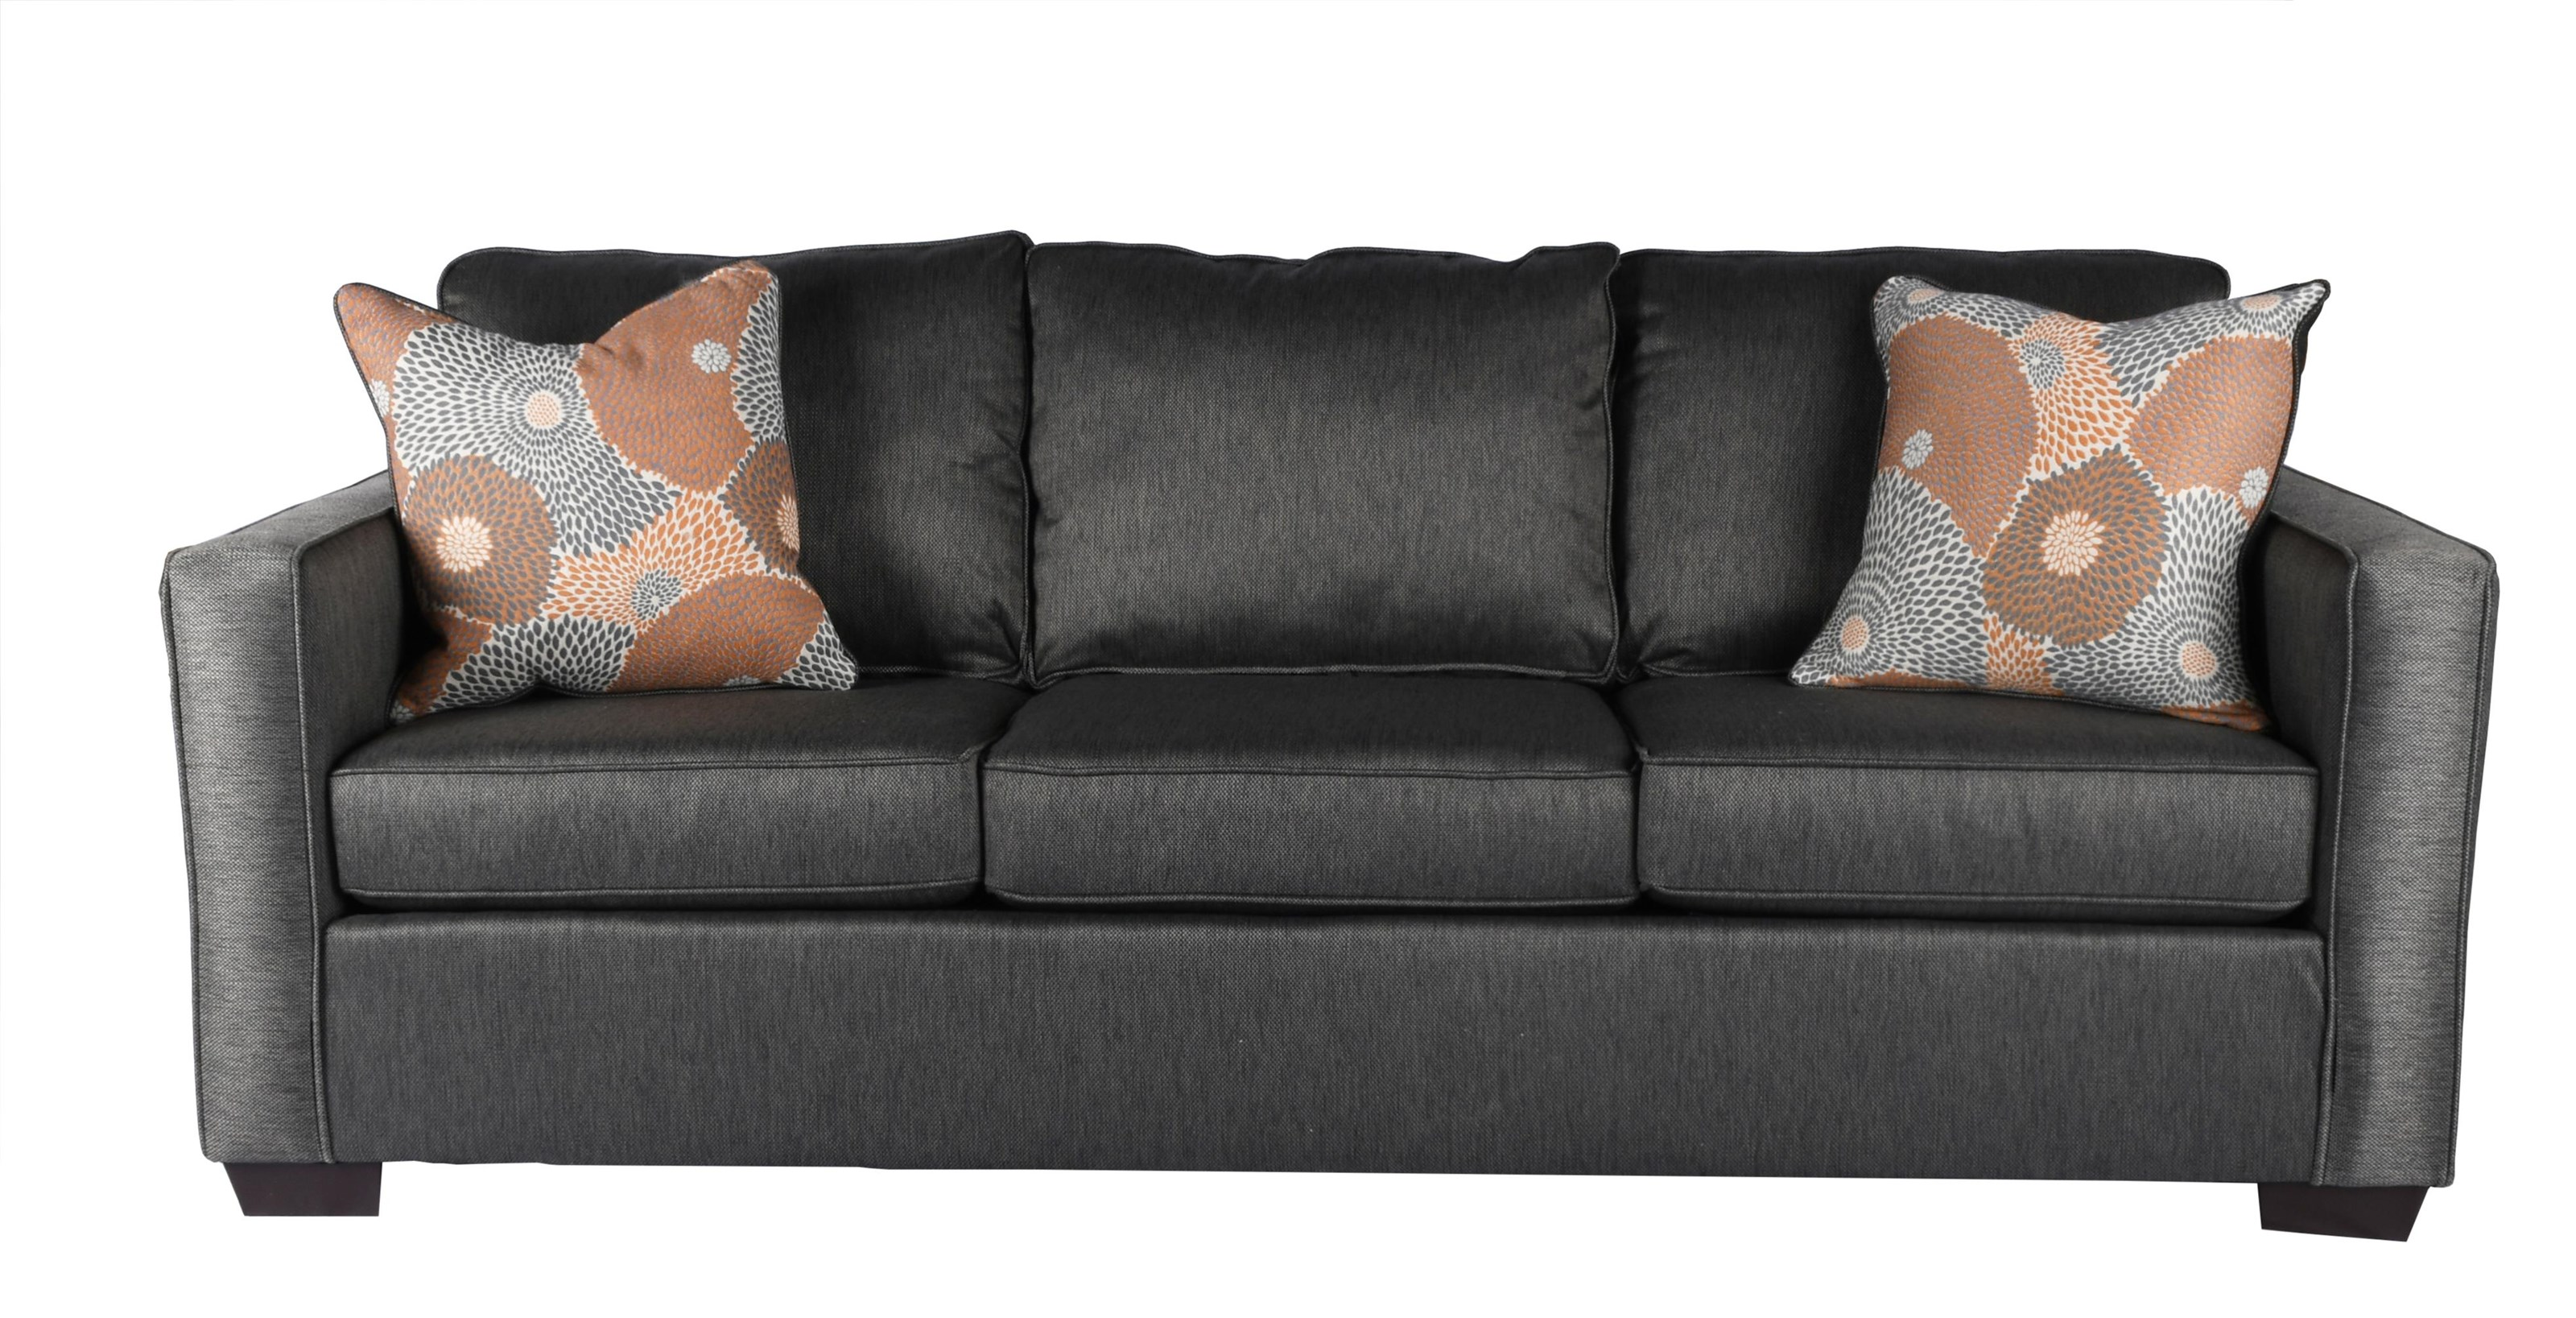 3940 Sofa by Magnolia Home at Bennett's Furniture and Mattresses